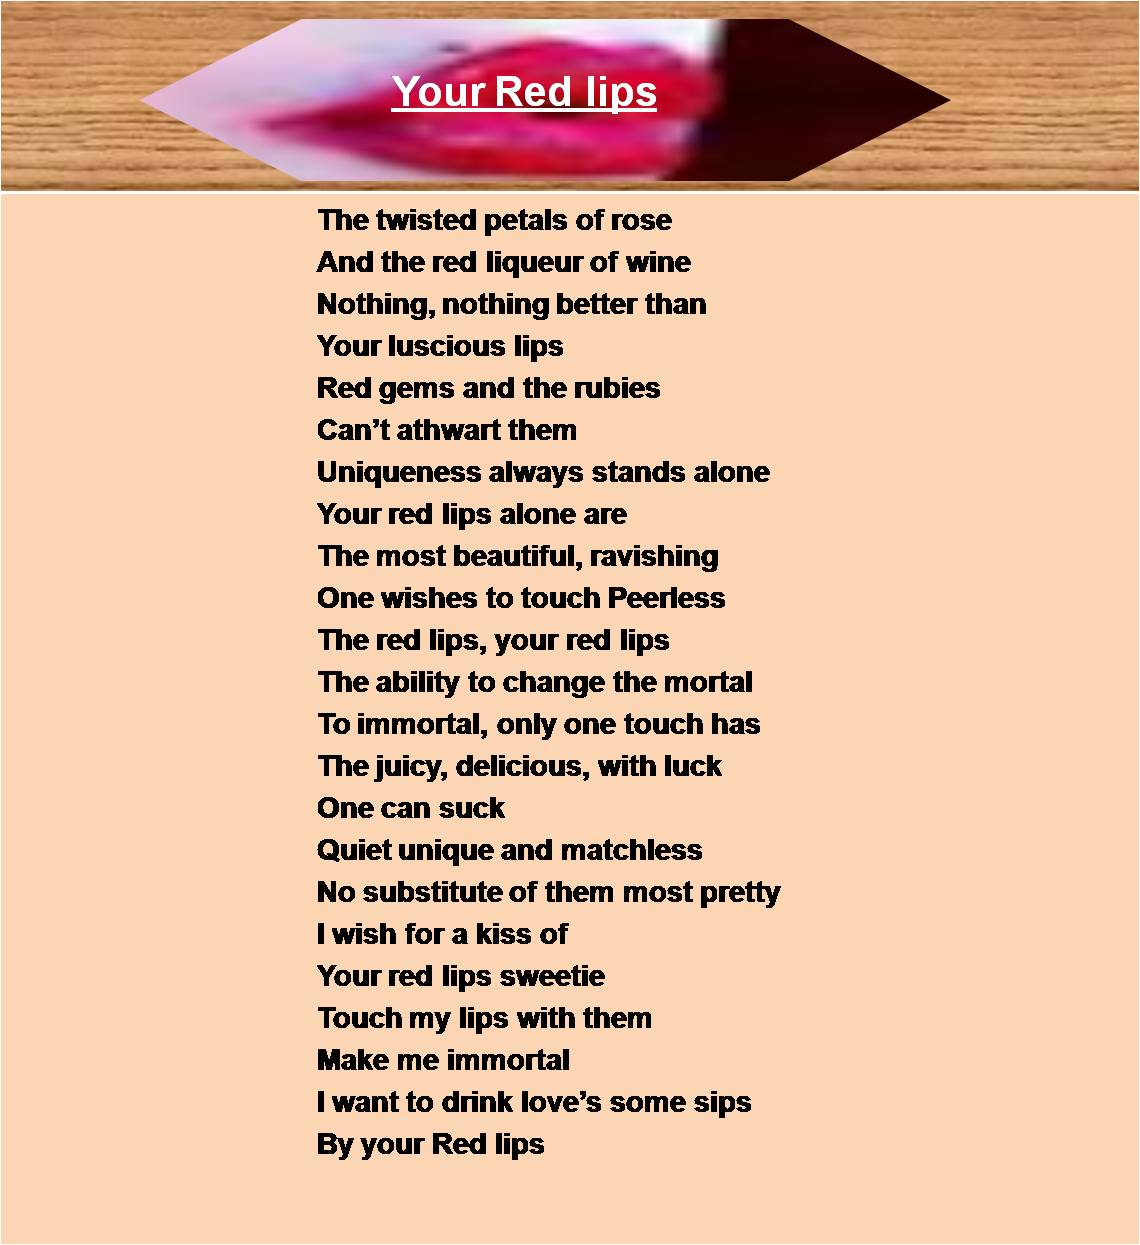 Beautylove and Poetry: Your Red Lips